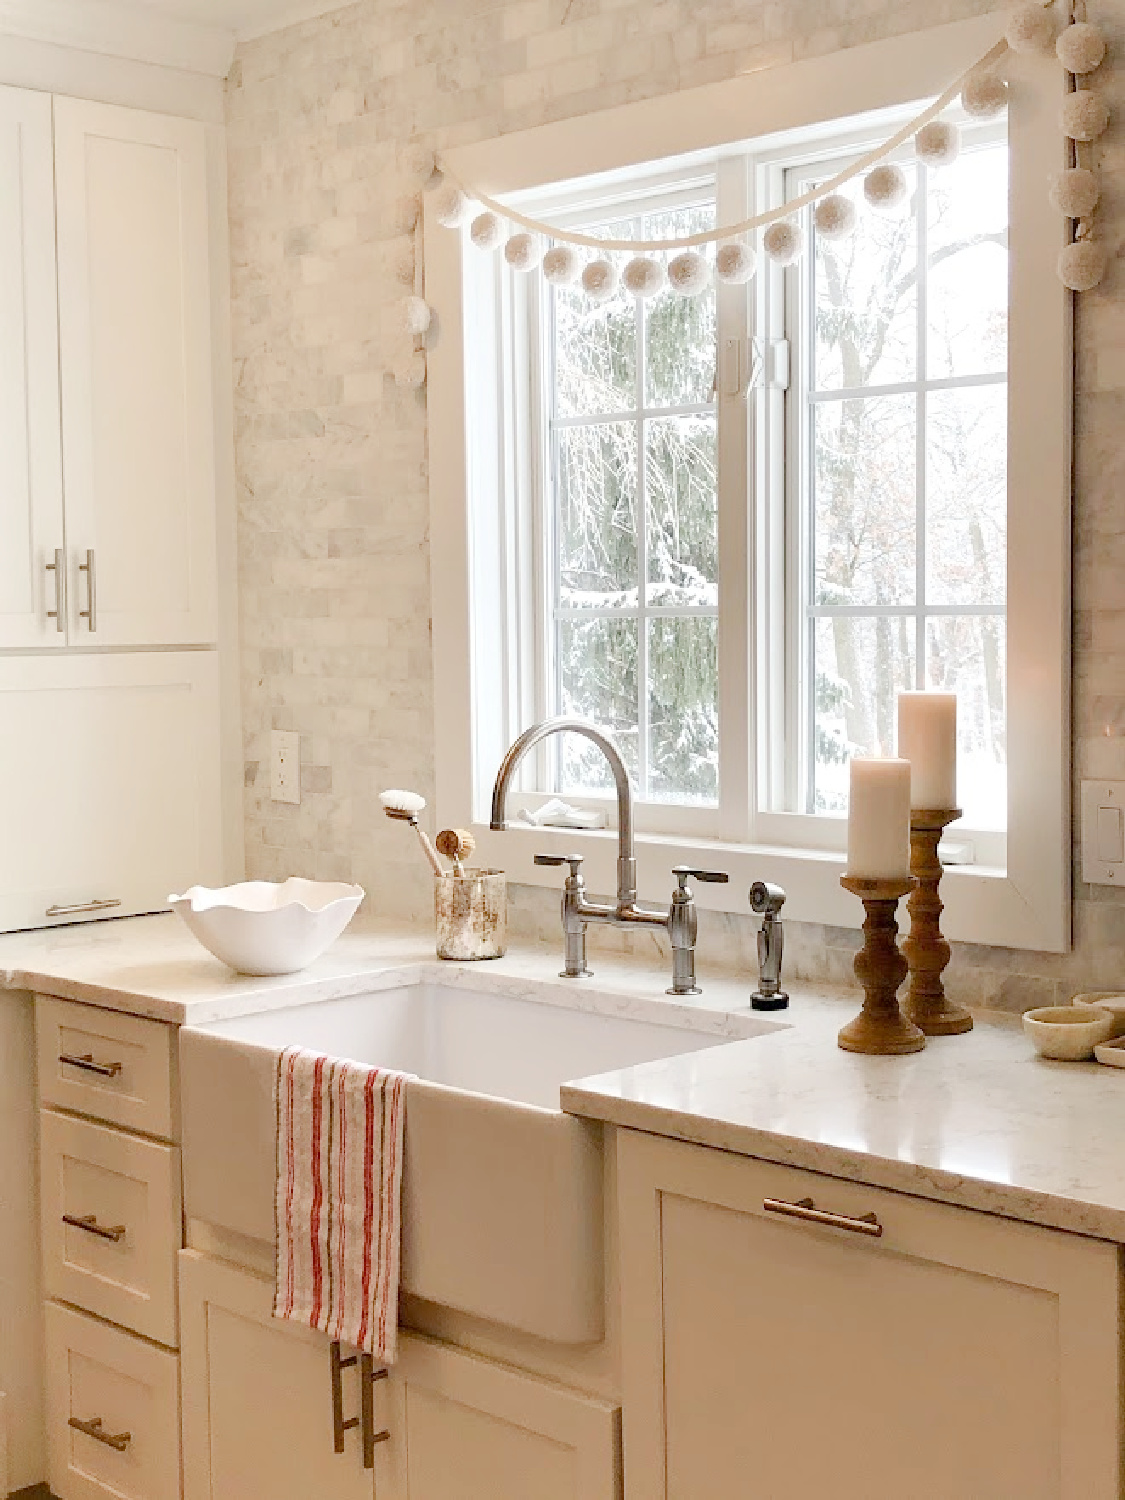 Serene European country farmhouse kitchen with farm sink, Viatera Minuet counters, and marble subway tile backsplash - Hello Lovely Studio.